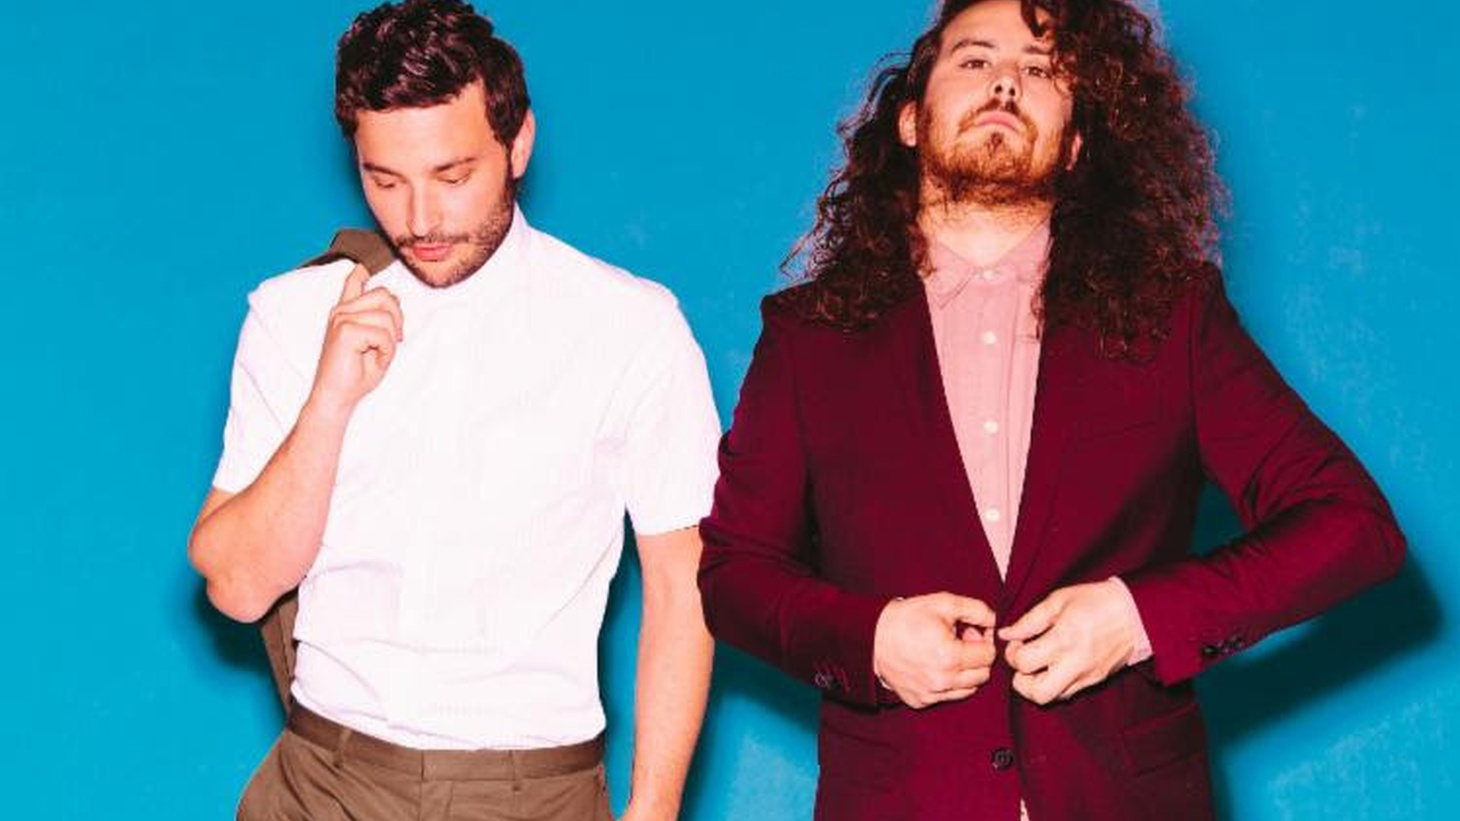 Detroit duo JR JR, formerly known as Dale Earnhardt JR JR,tackles the notion of over-consumption on its song Clean Up.